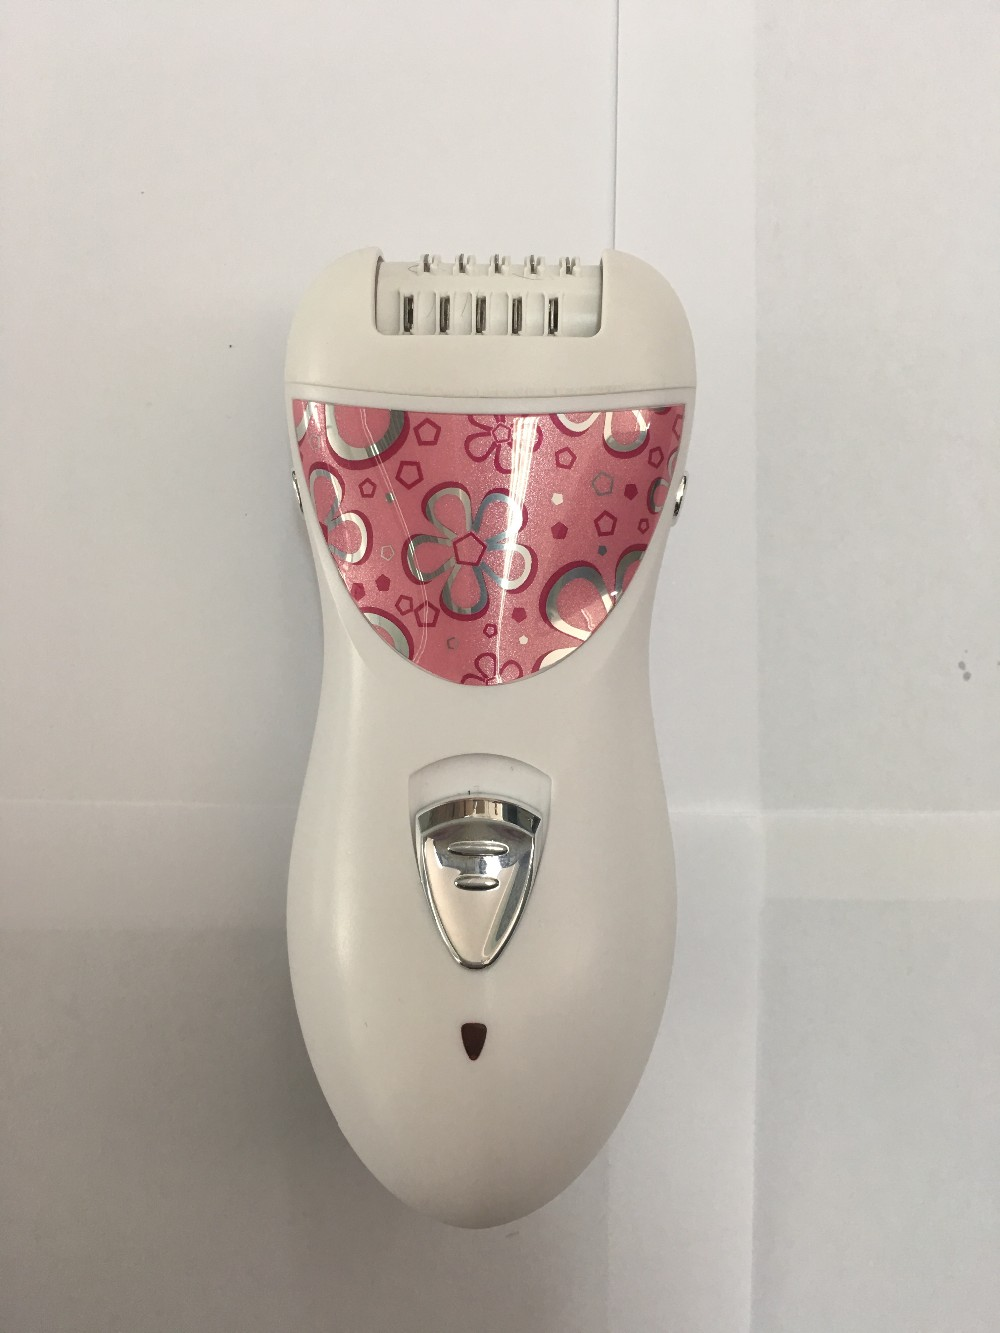 Foot Dead Skin Remover Shaver Lady Epilator 3 in 1 set